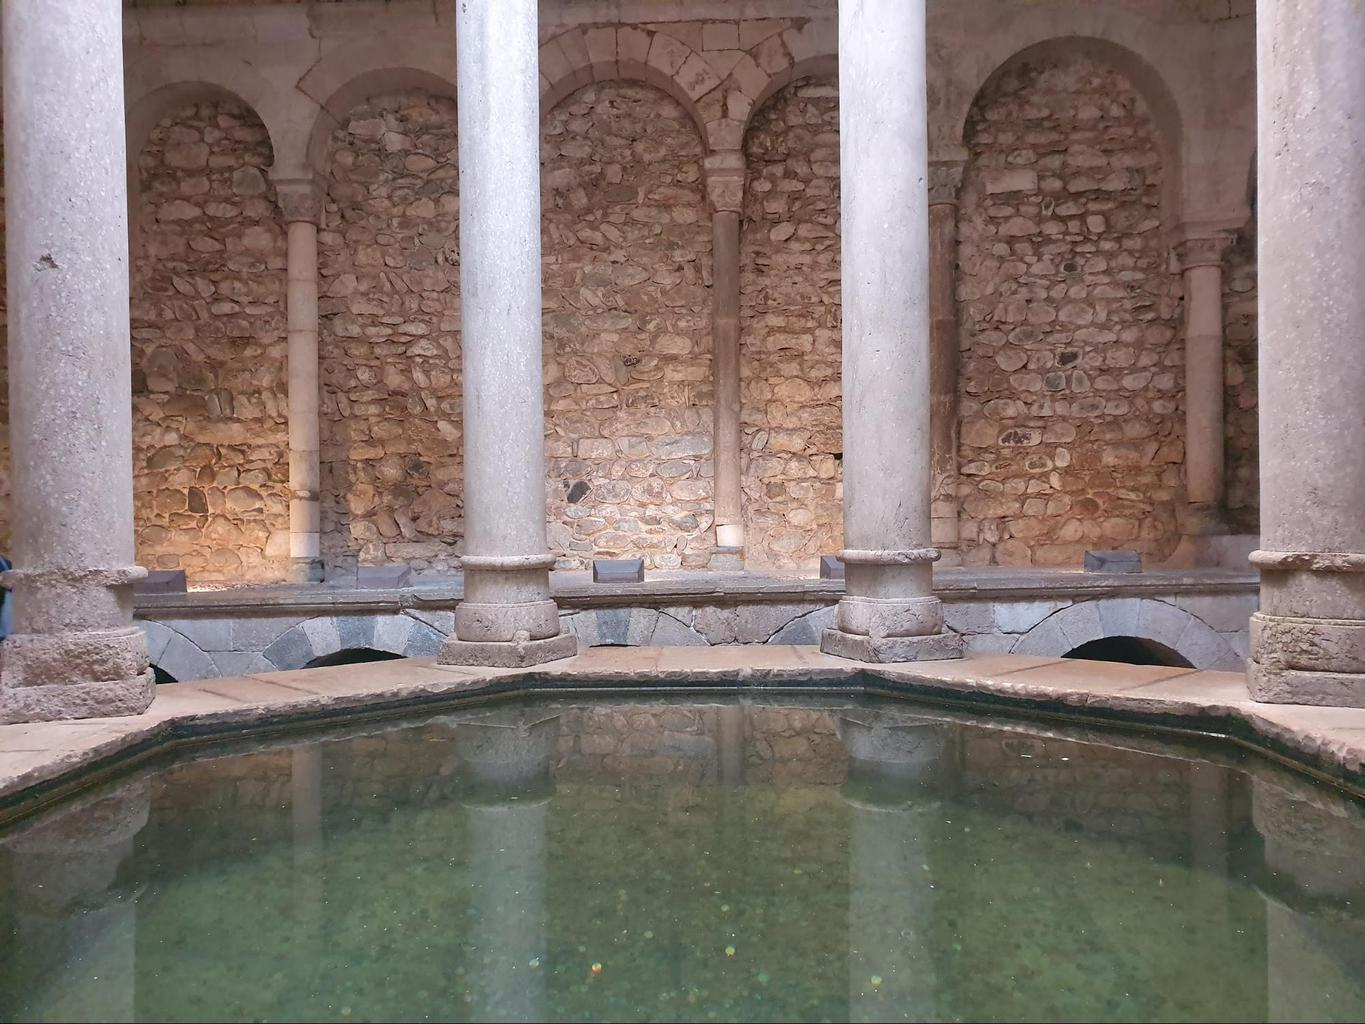 The changing room inside Girona's Arab Baths